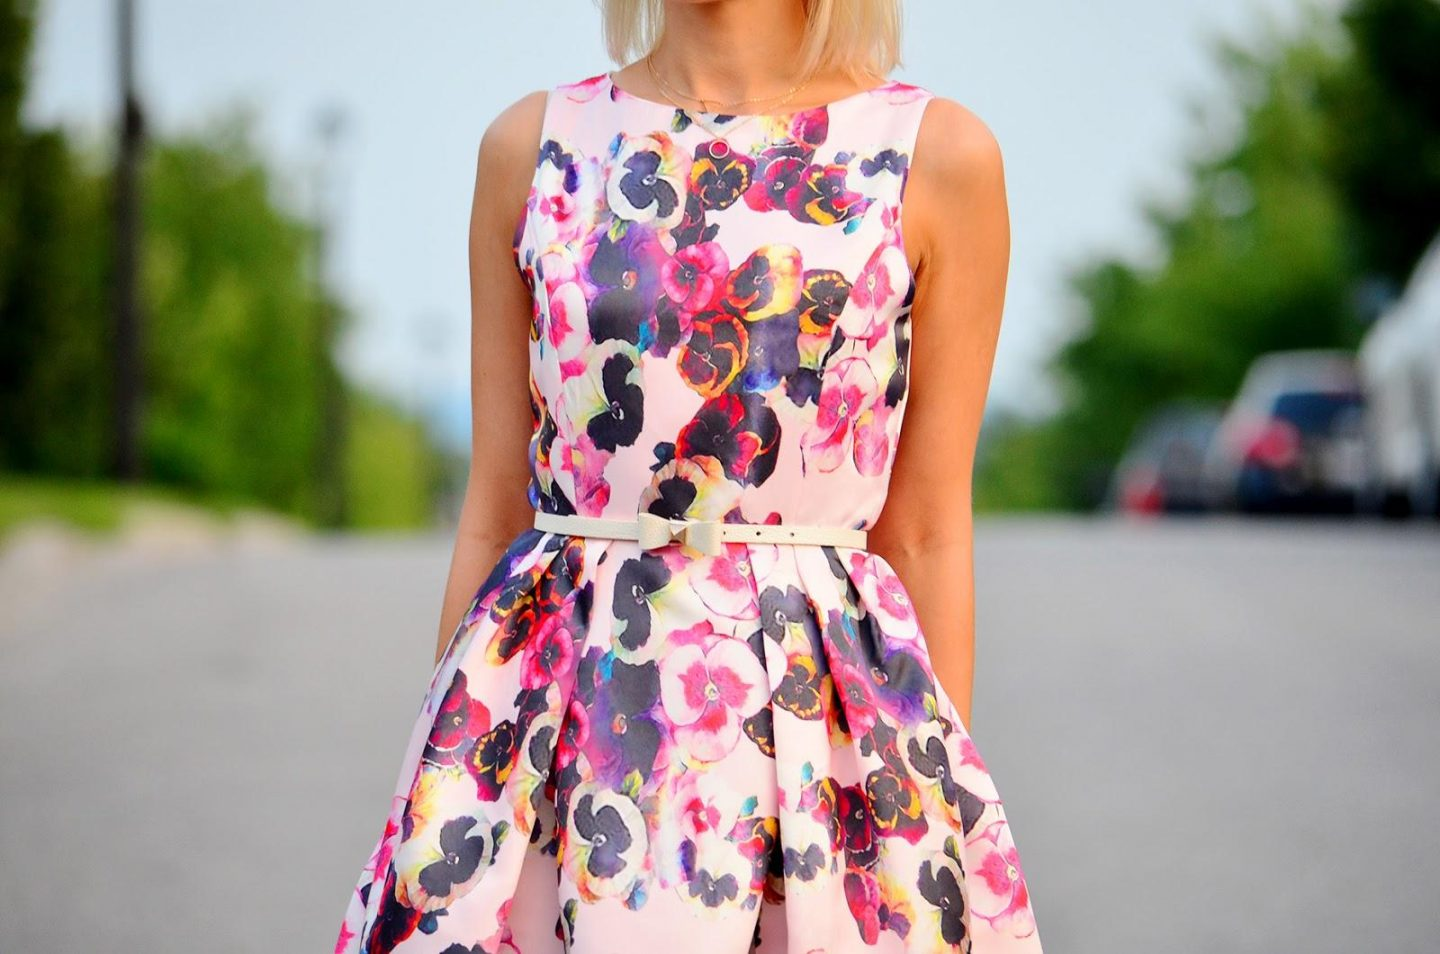 Style, OOTD, floral dress, floral print, flare dress, Romwe, Kate Spade, Asos, forever21, ladylike, kate spade style, flare dress, romwe dress